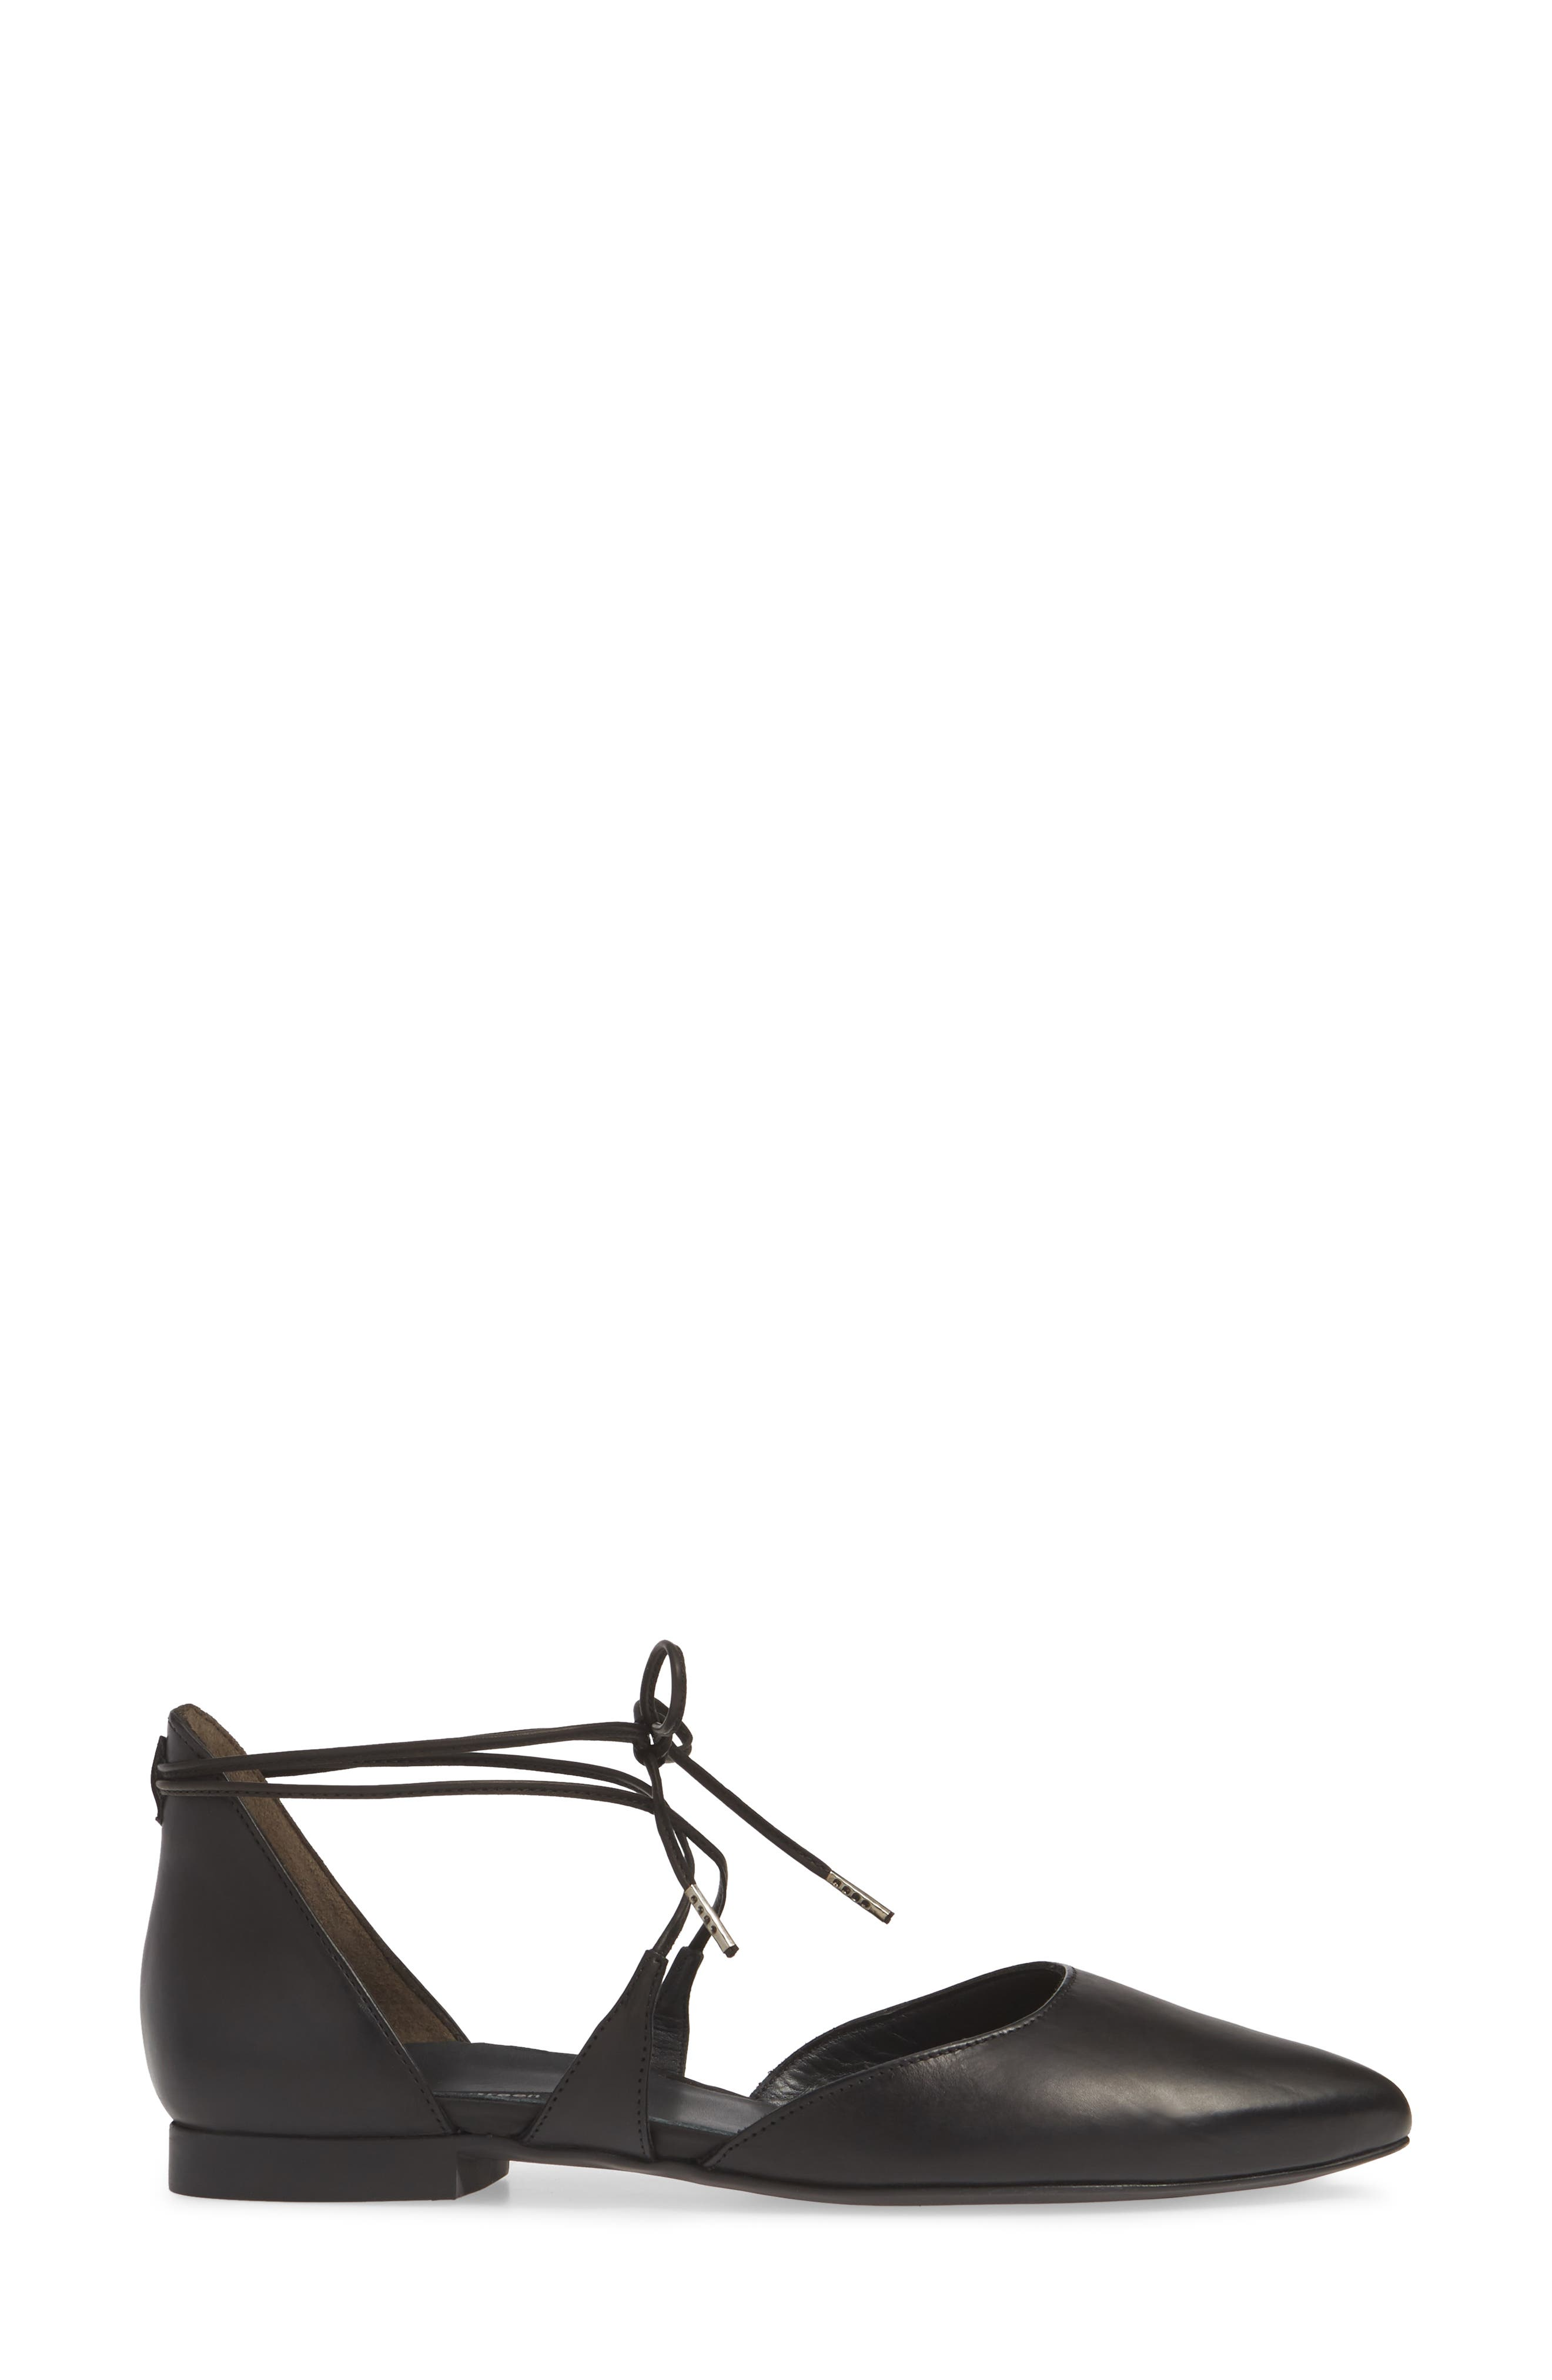 PAUL GREEN, Lace Up Flat, Alternate thumbnail 3, color, BLACK LEATHER